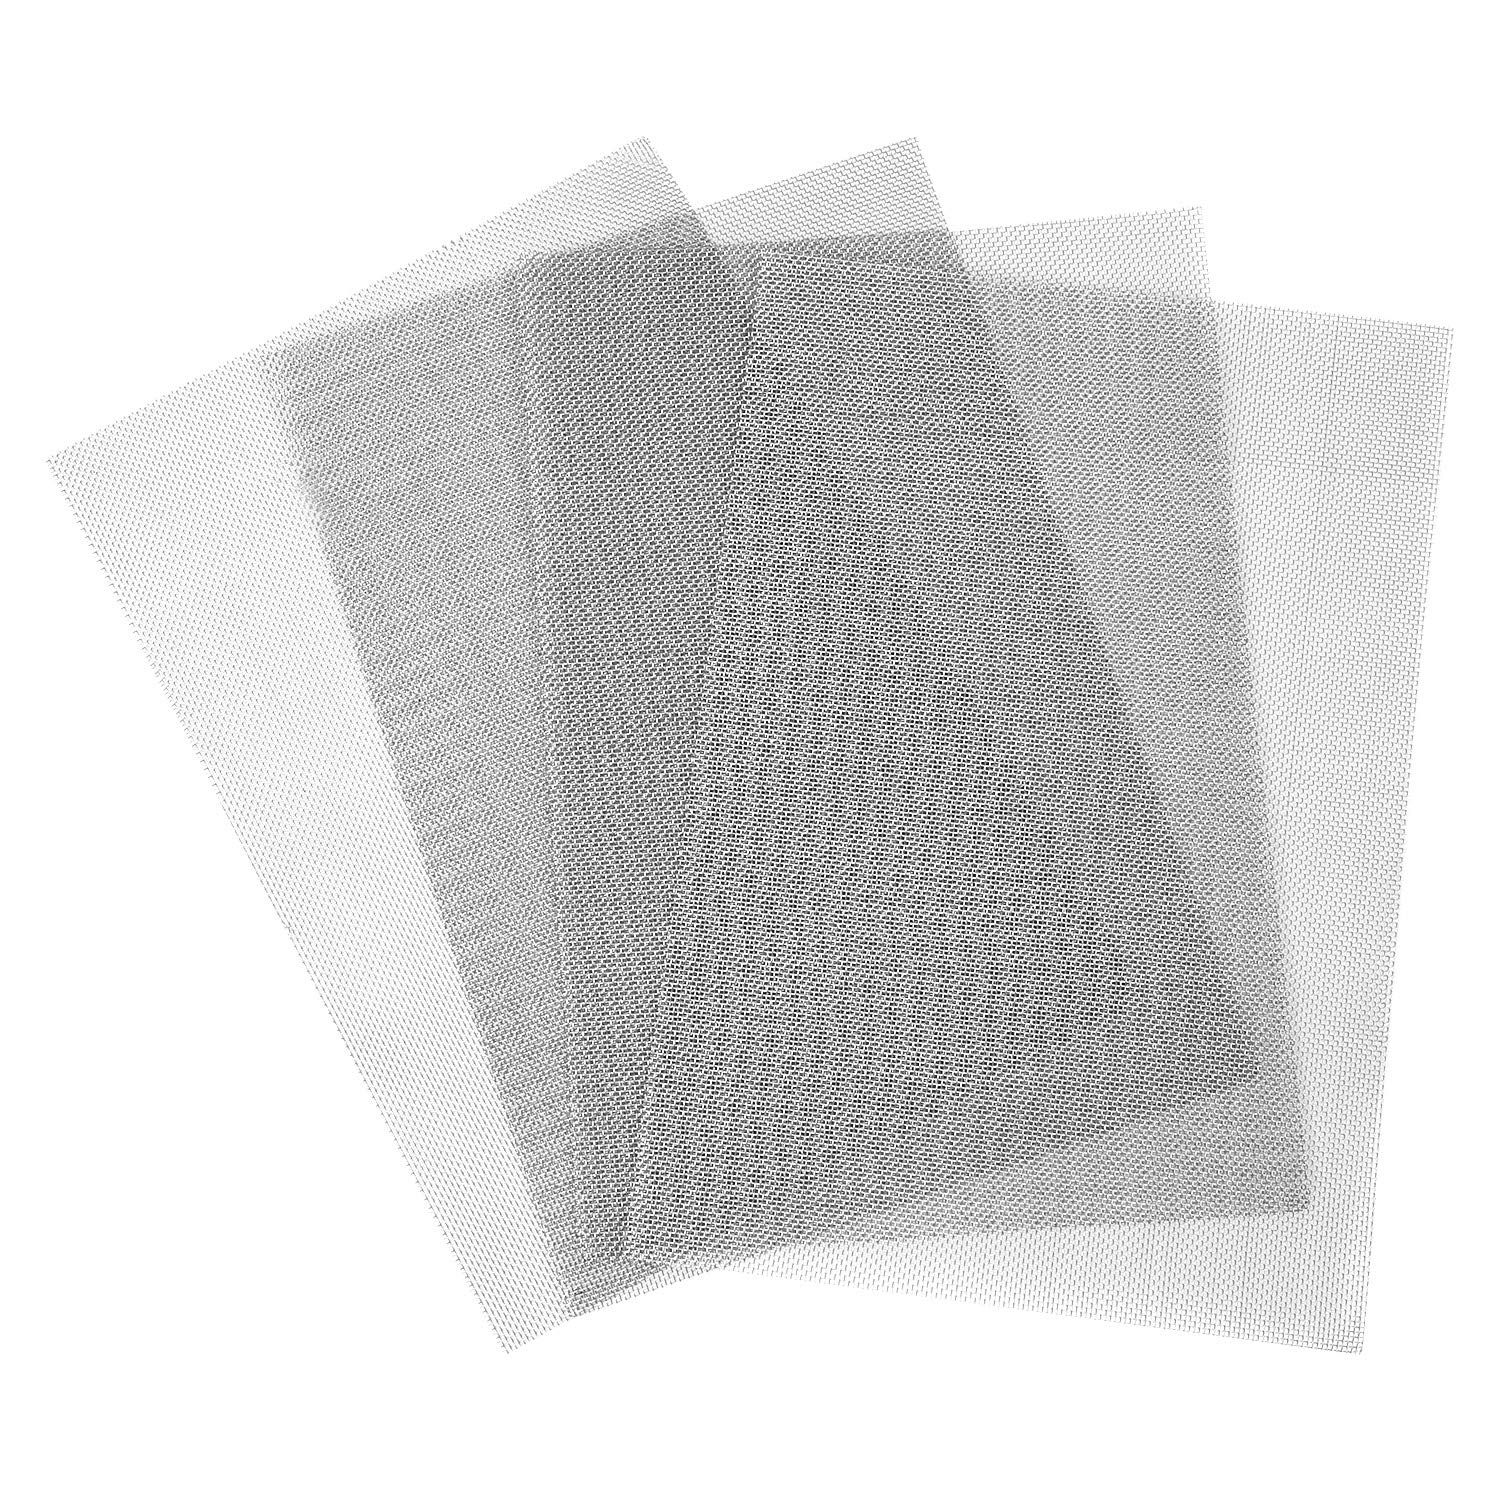 Elcoho 4 Pack 304 Stainless Steel Woven Wire 20